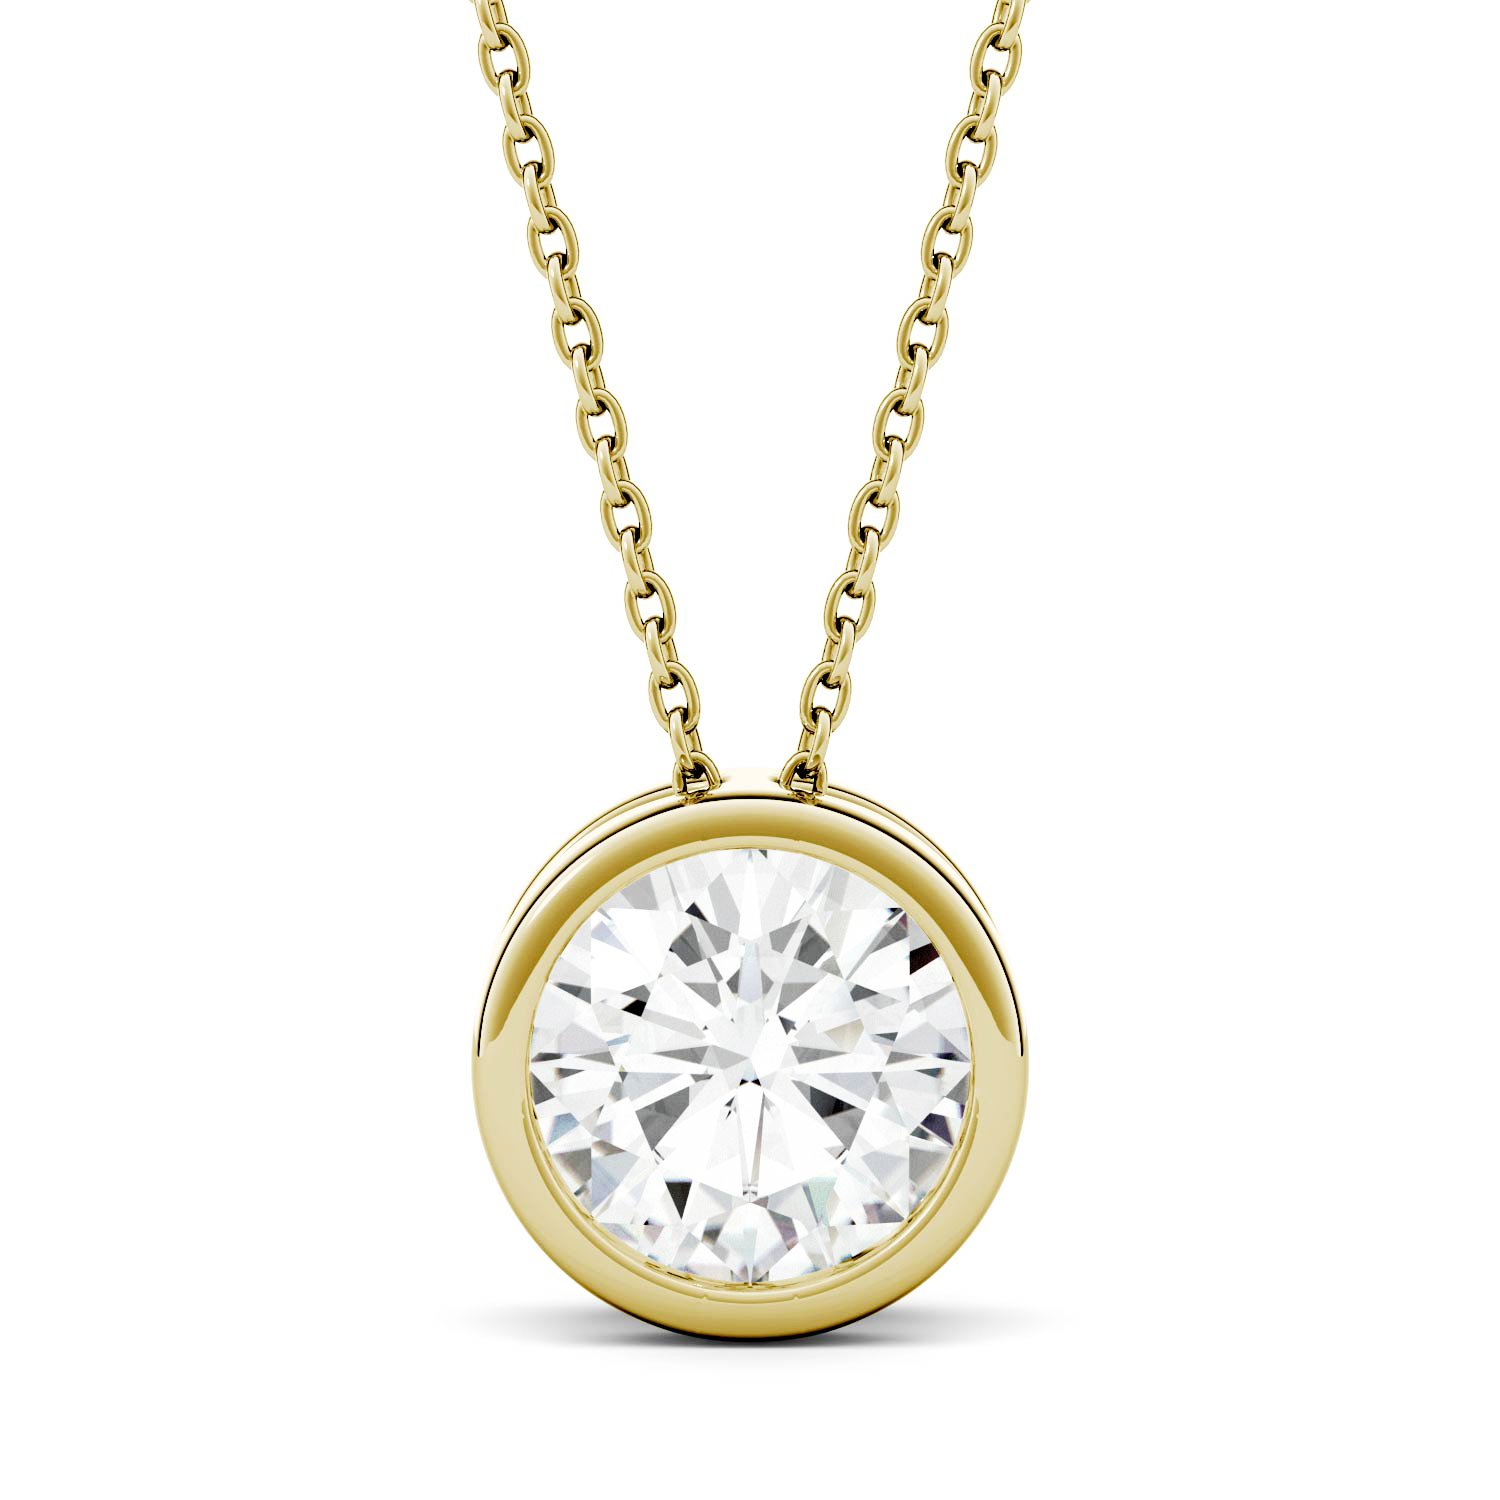 Forever Classic 14K Gold Round 8.0mm Moissanite Pendant Necklace, 1.90ct DEW By Charles & Colvard